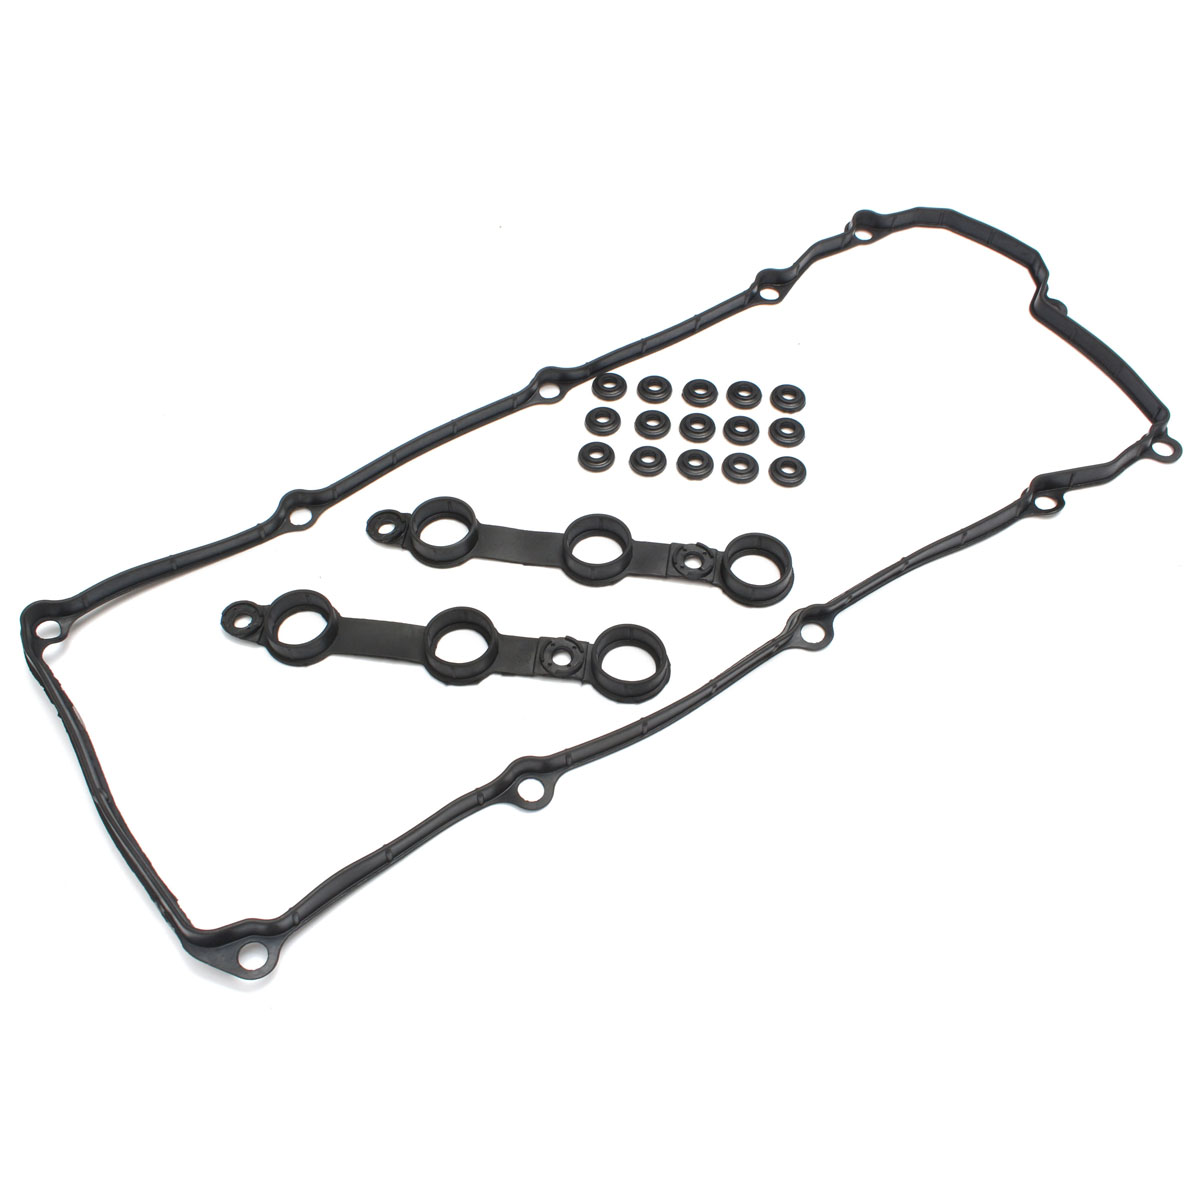 Valve Cover Gasket Set For Bmw E36 E38 E39